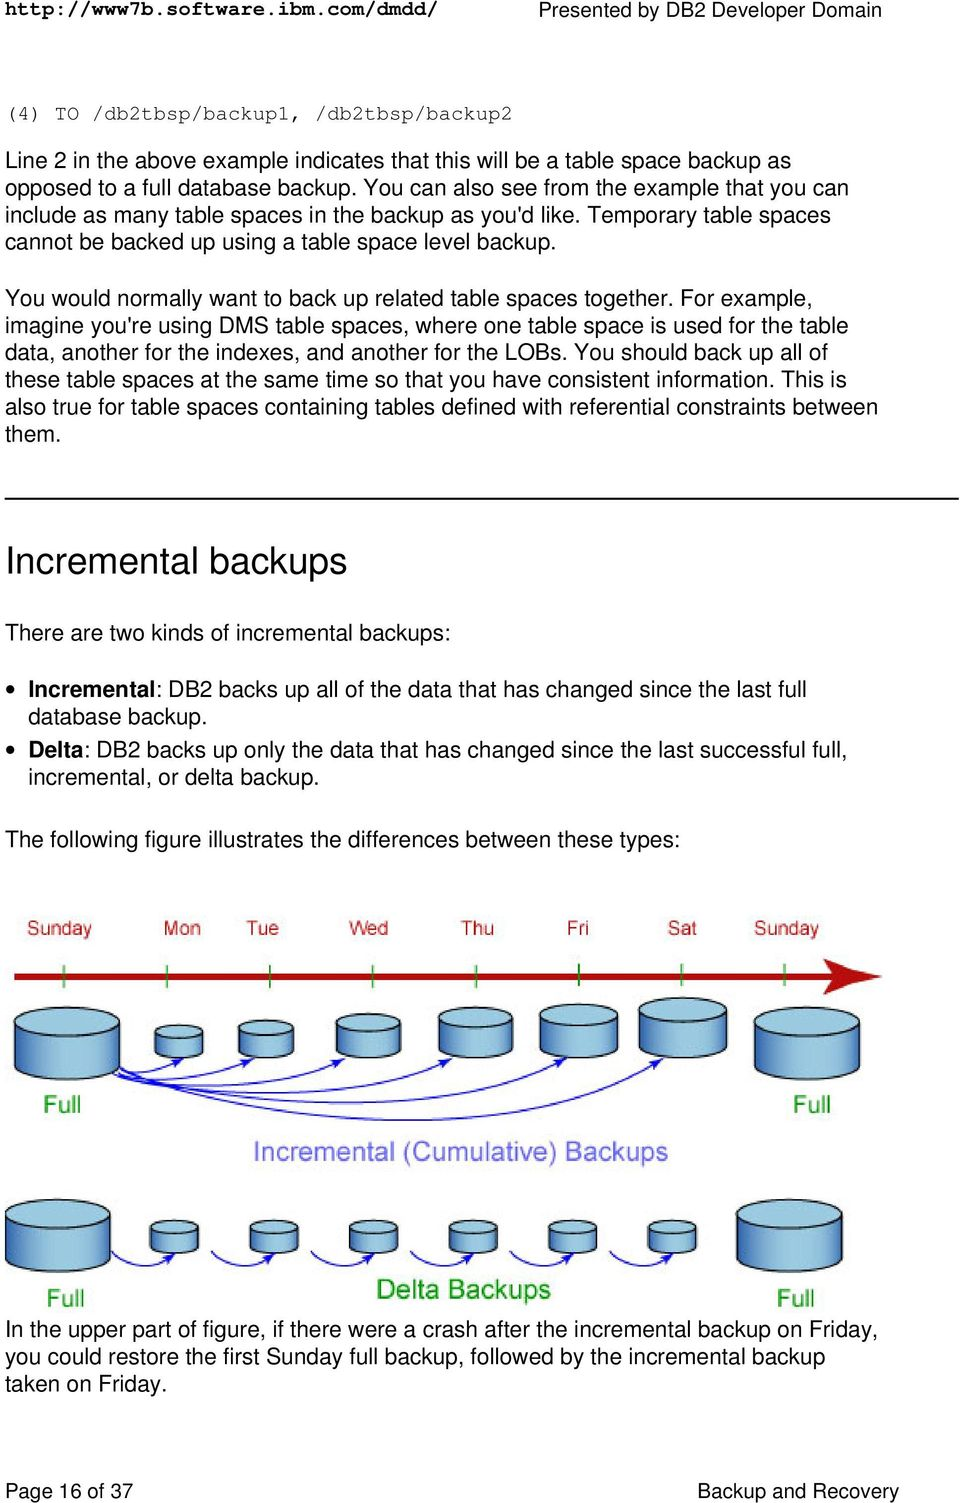 Backup and Recovery  Presented by DB2 Developer Domain - PDF